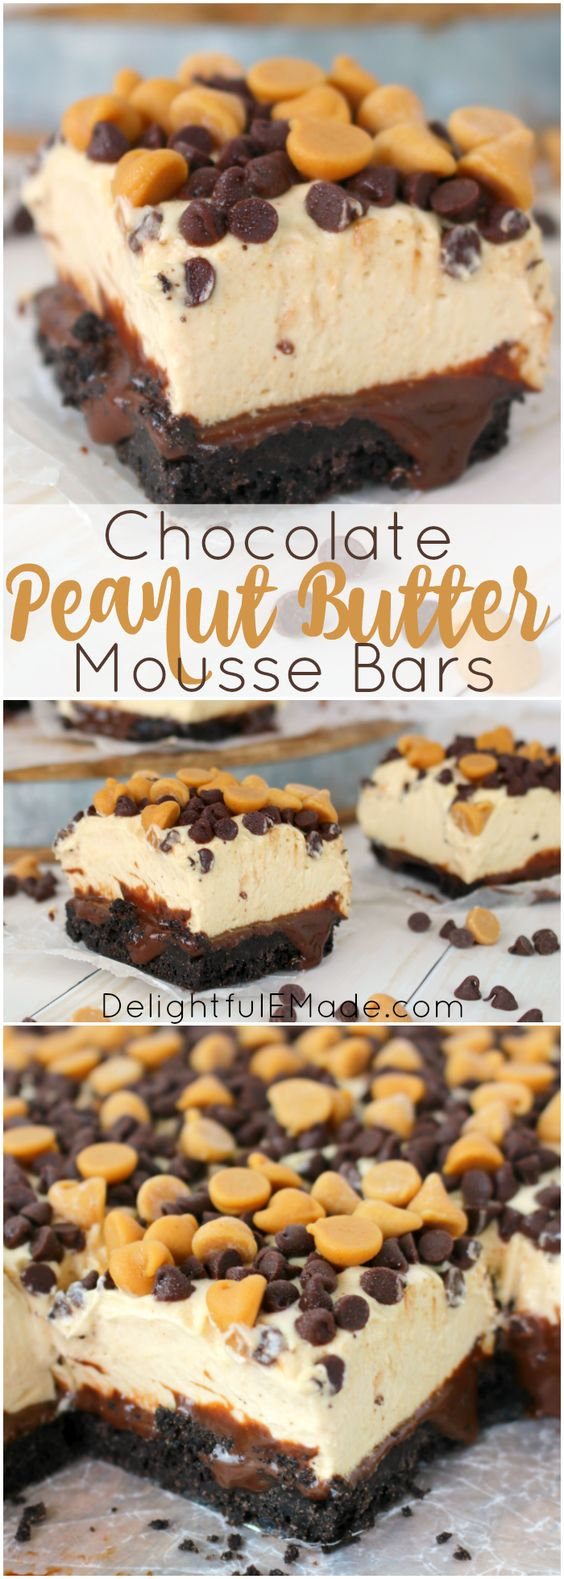 butter read more peanuts oreo crusts chips my pinterest peanut butter ...